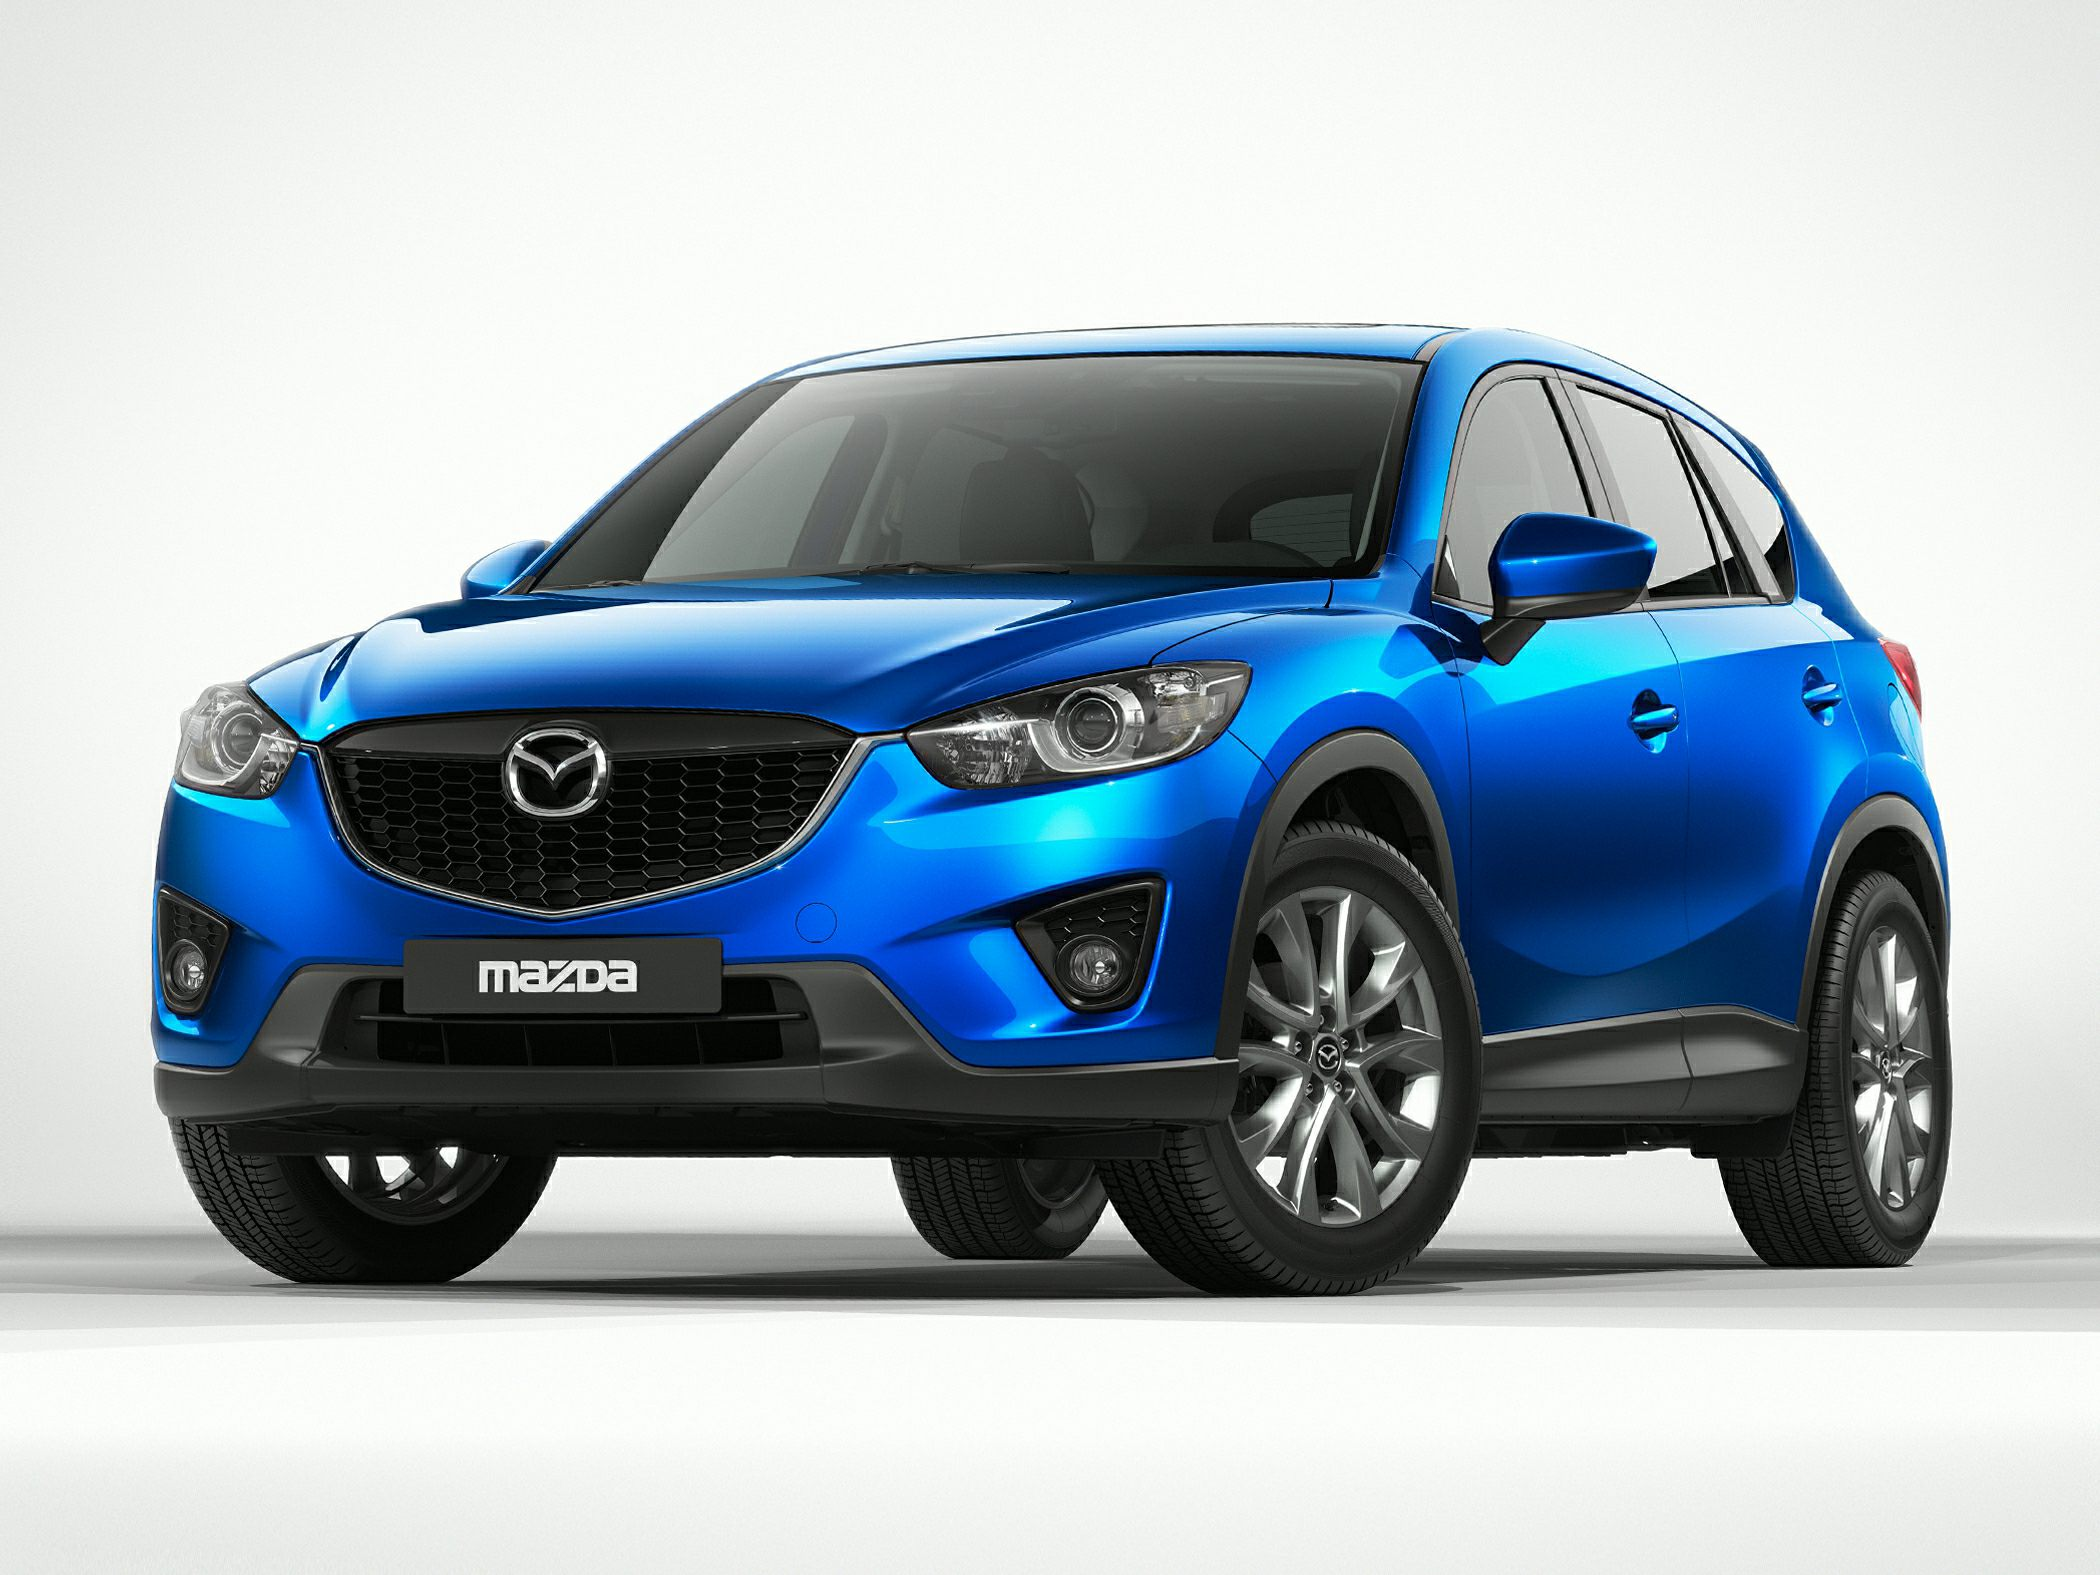 2014 MAZDA CX-5 GRAND TOURING